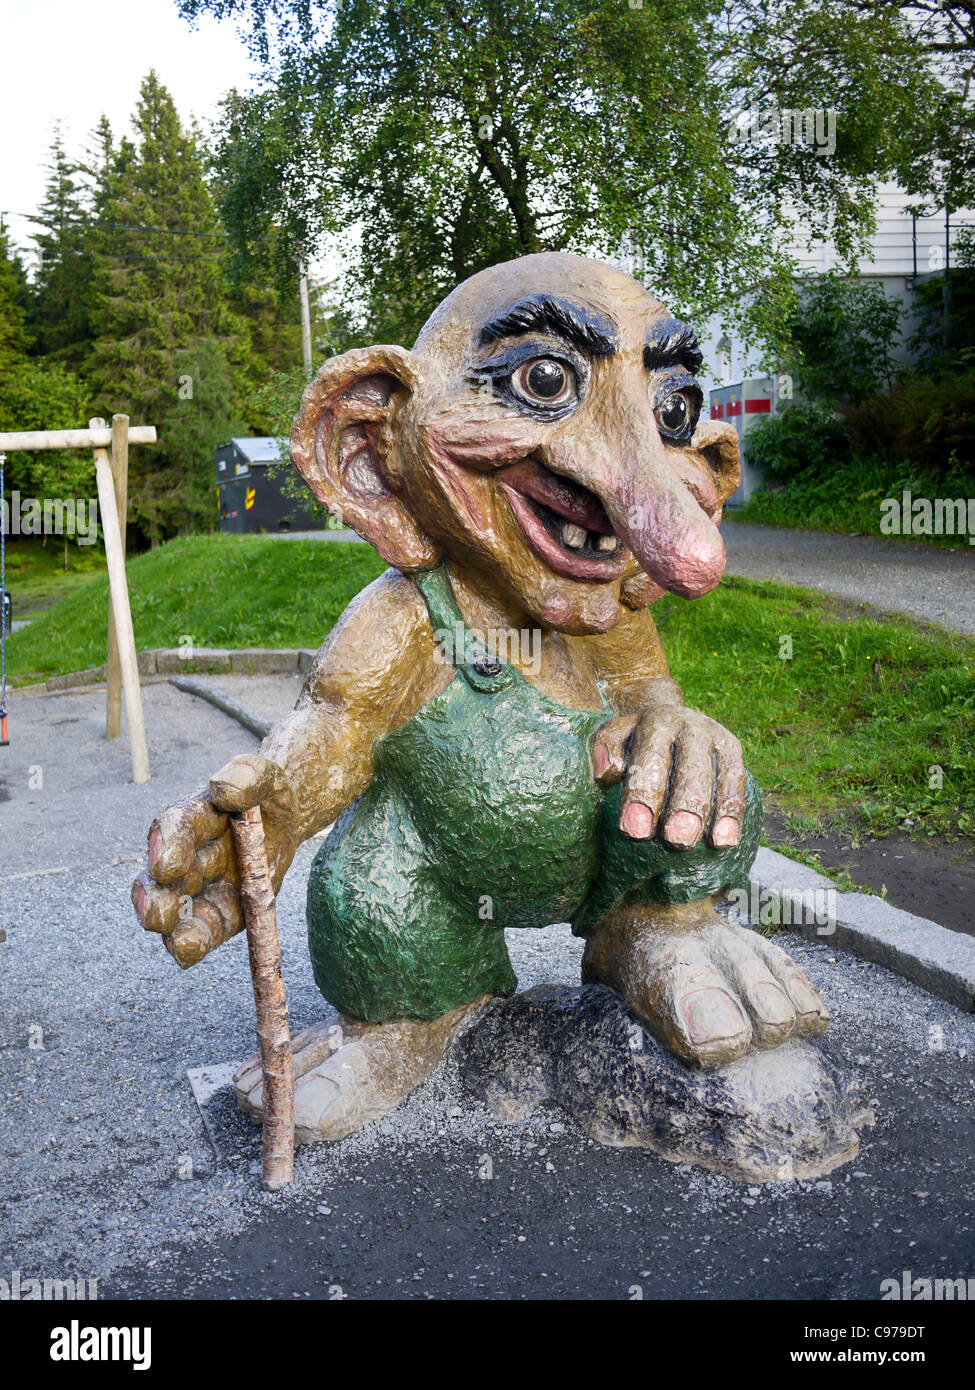 Bergen Norway a statue of a troll Stock Photo Royalty Free Image